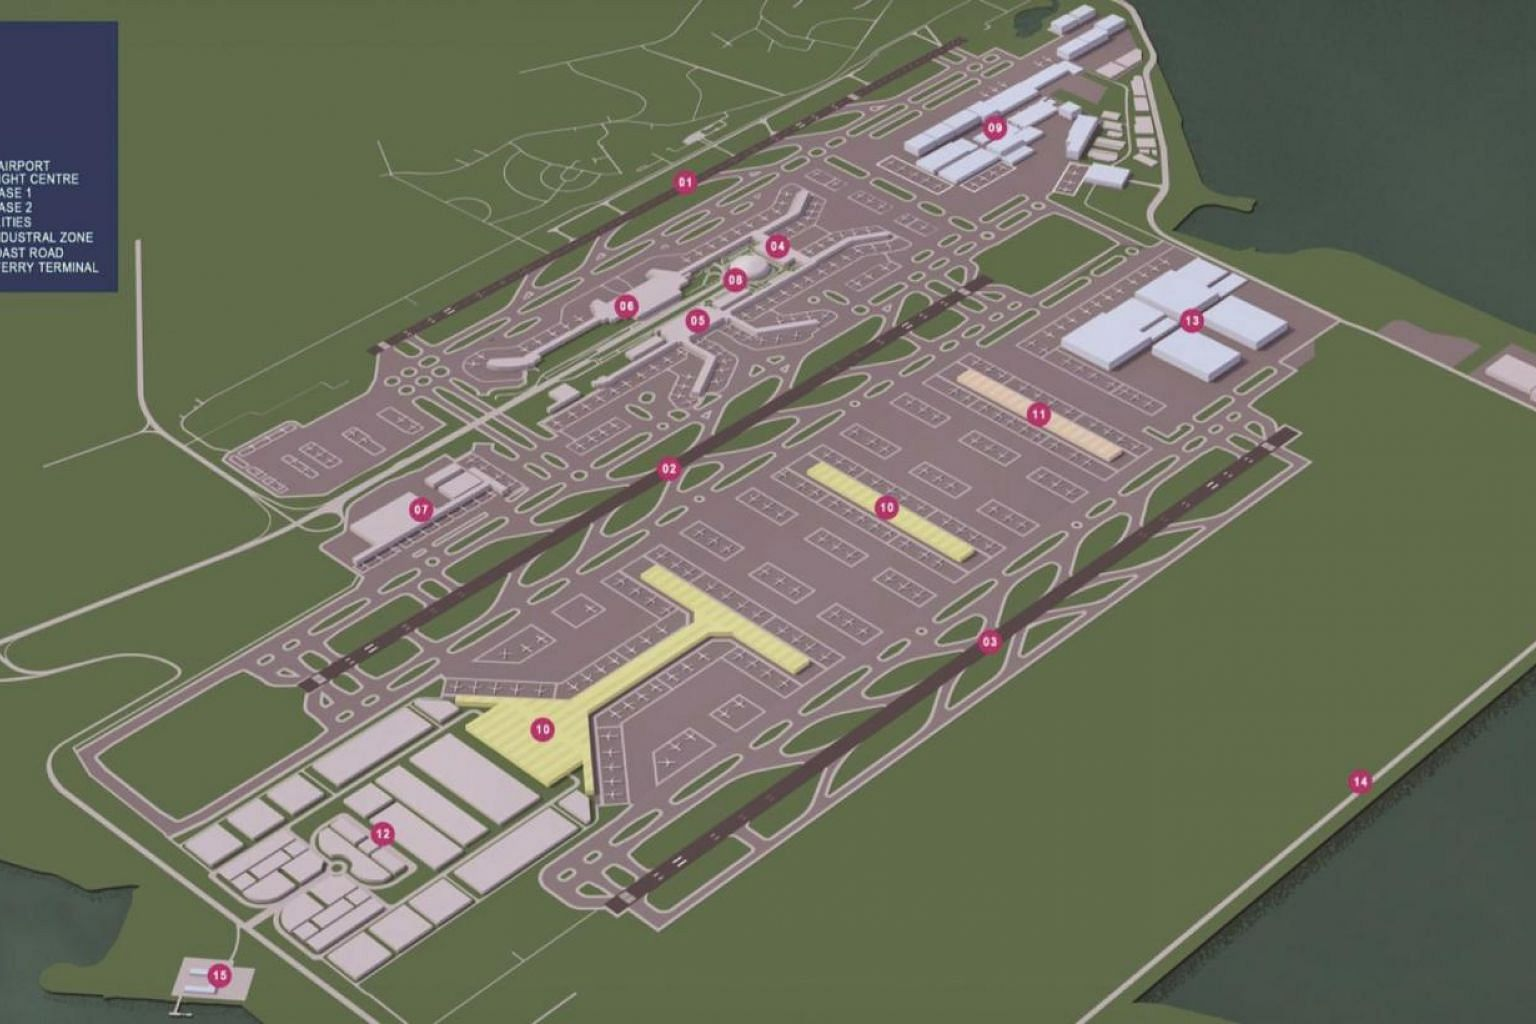 The finalised Terminal 5 Concept Plan. Site surveys, soil investigations and clearance works have been done and the team is now focused on ground improvement works. -- PHOTO: MINISTRY OF TRANSPORT